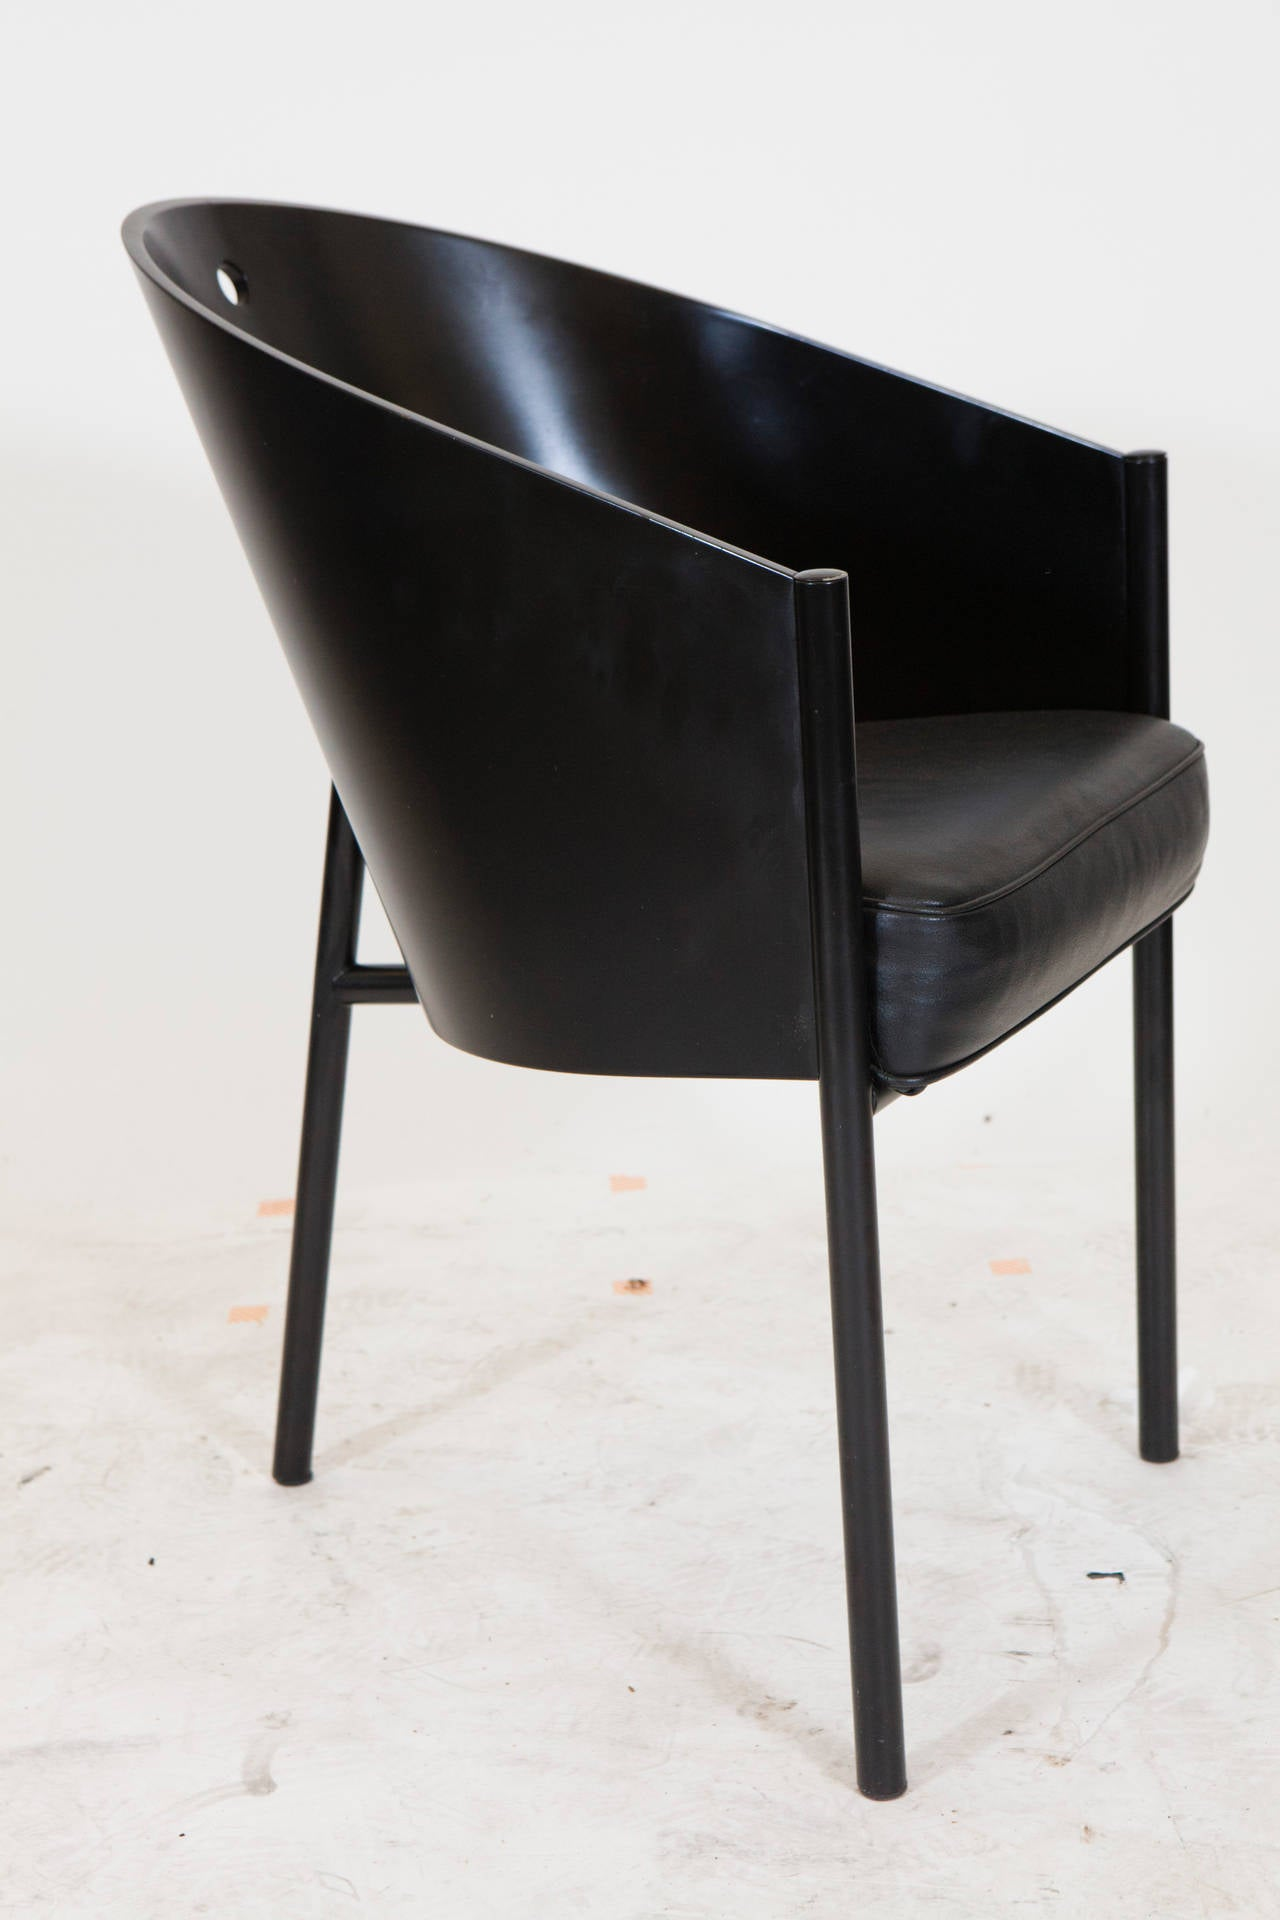 A set of eight three-legged black chairs. Designed by Philippe Starck in 1982 for the Cafe Costes in Paris these chairs were produced by Driade/Aleph an Italian company in the late 1980s. Chairs have a black metal tubular frame with black laminated